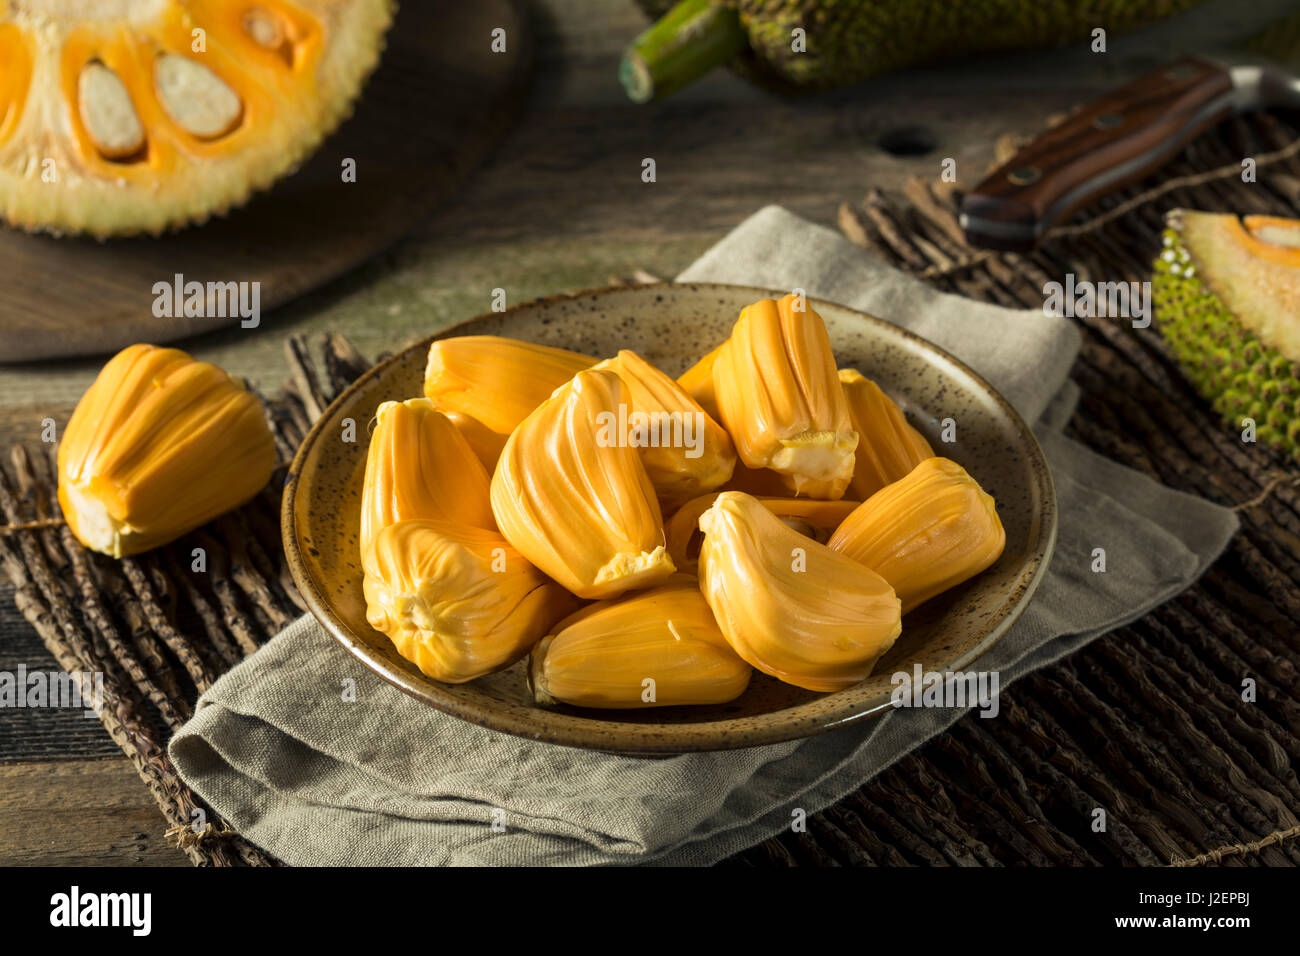 Homemade Organic Fresh Jackfruit Ready to Eat - Stock Image